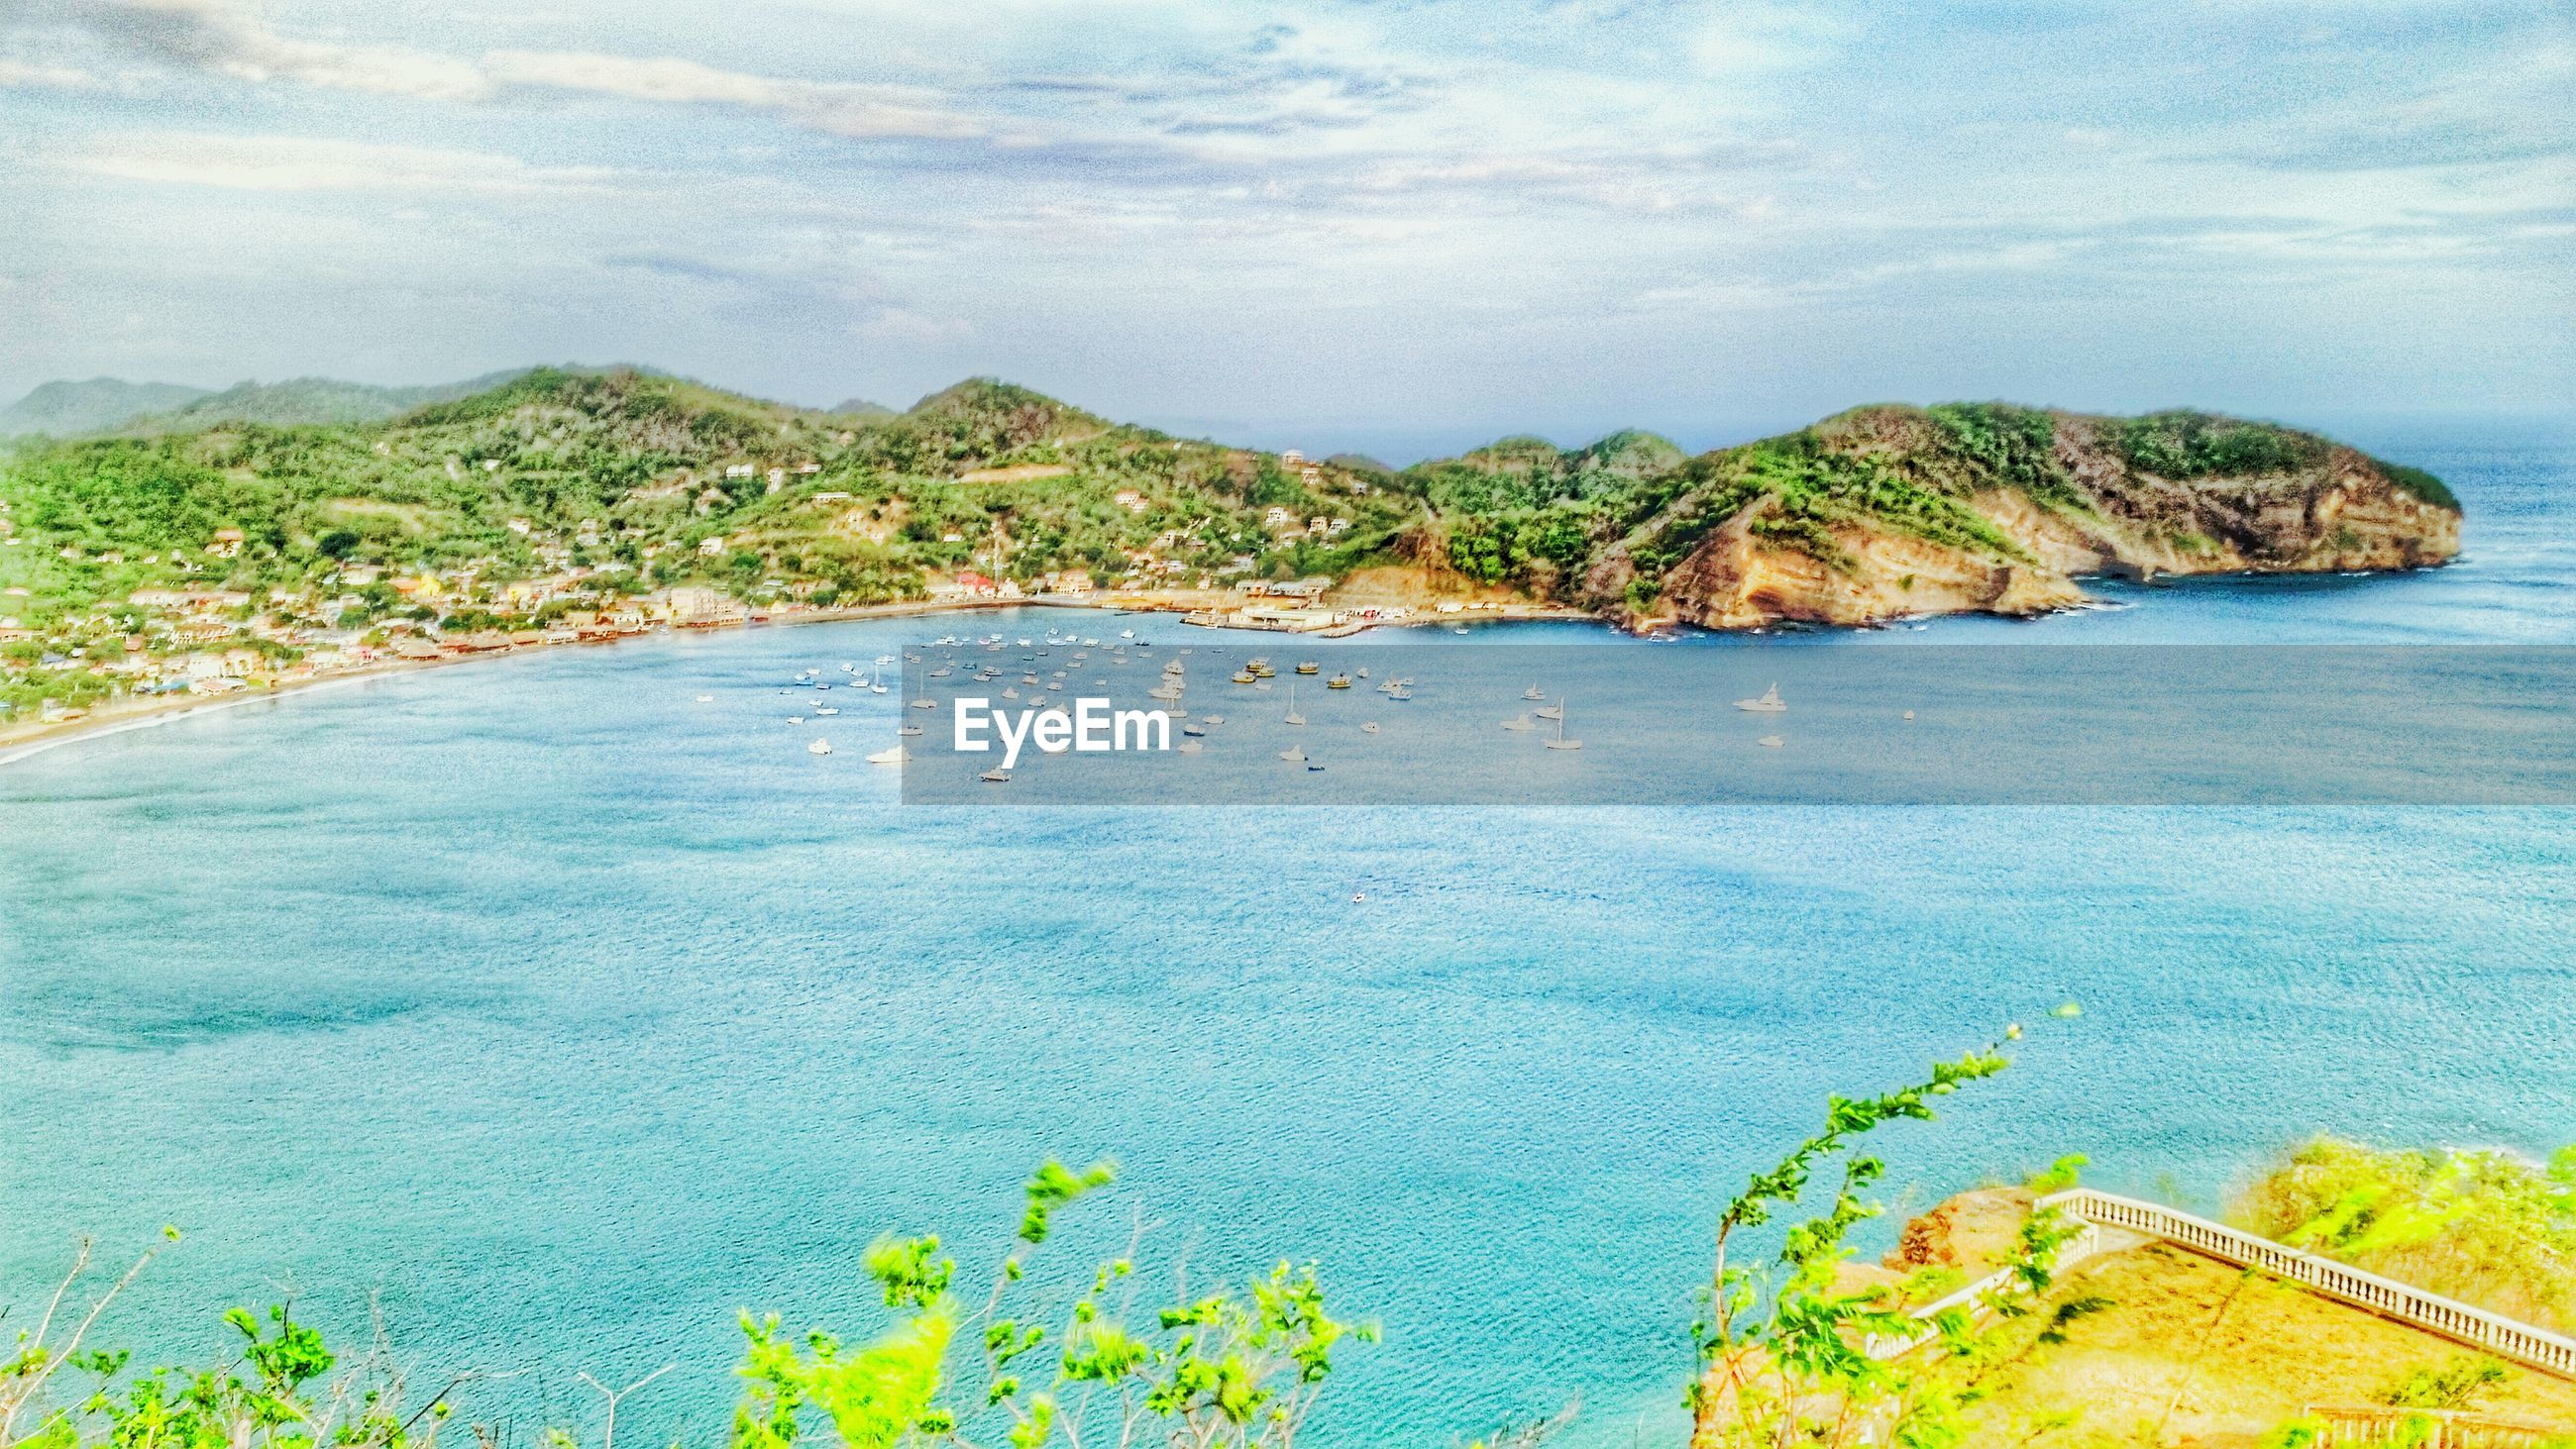 water, sea, tranquil scene, tranquility, scenics, beauty in nature, nature, sky, beach, coastline, plant, shore, green color, horizon over water, idyllic, high angle view, rock - object, growth, day, cliff